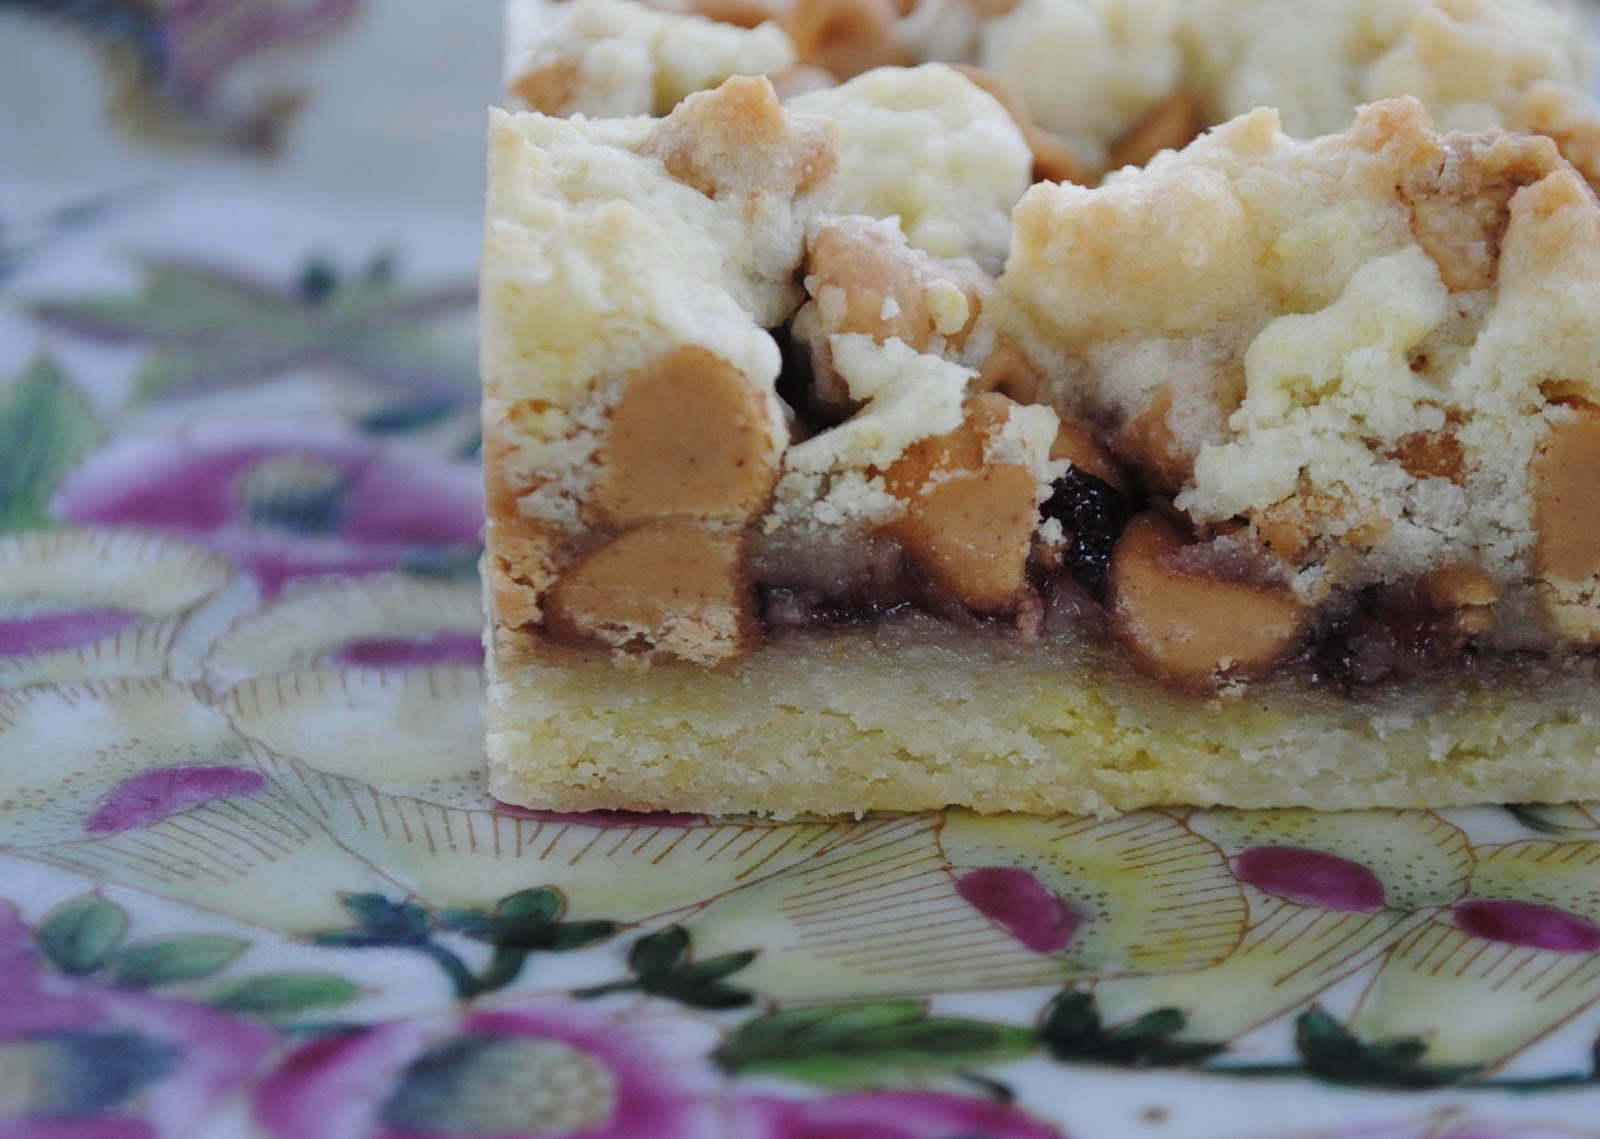 ... : PEANUT BUTTER AND JELLY MUFFINS and PEANUT BUTTER AND JELLY BARS